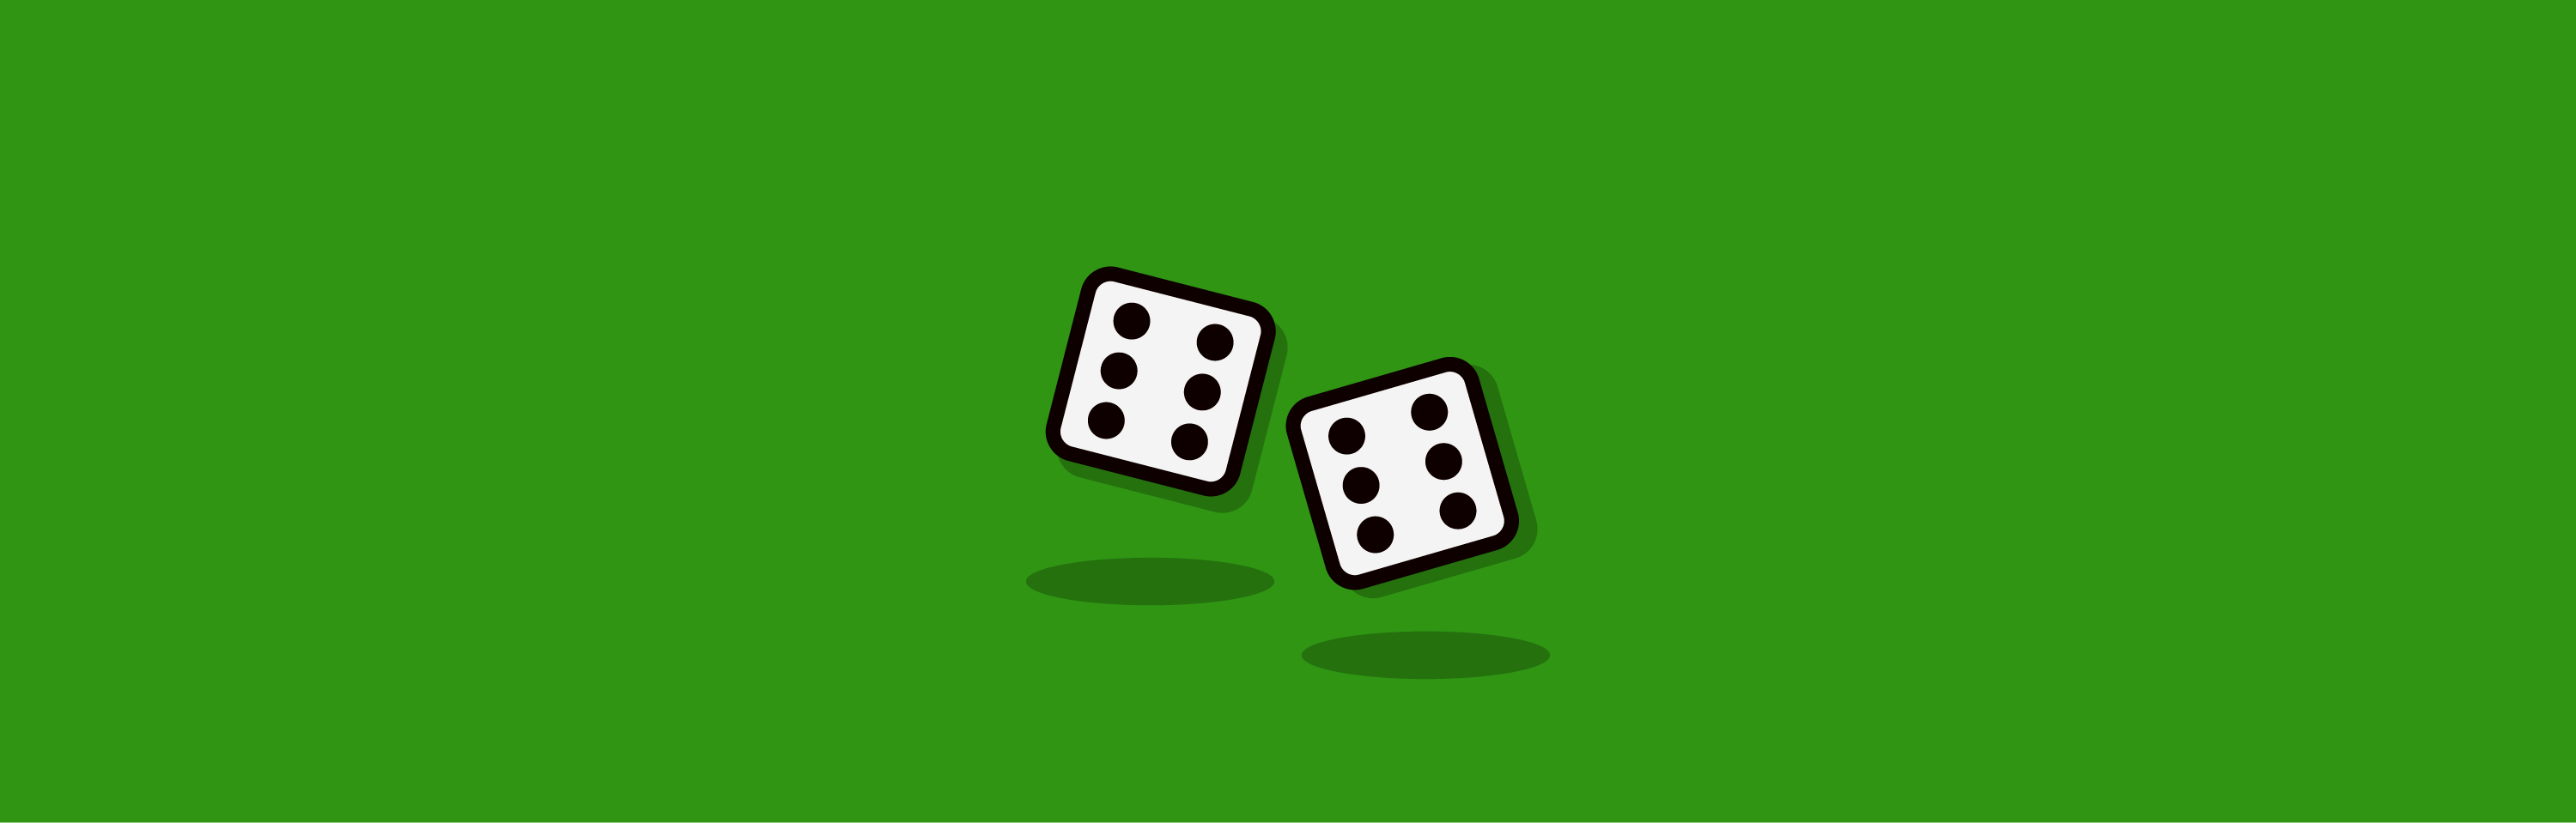 The best specialty Casino games are here at Joe Fortune - let's roll the dice.